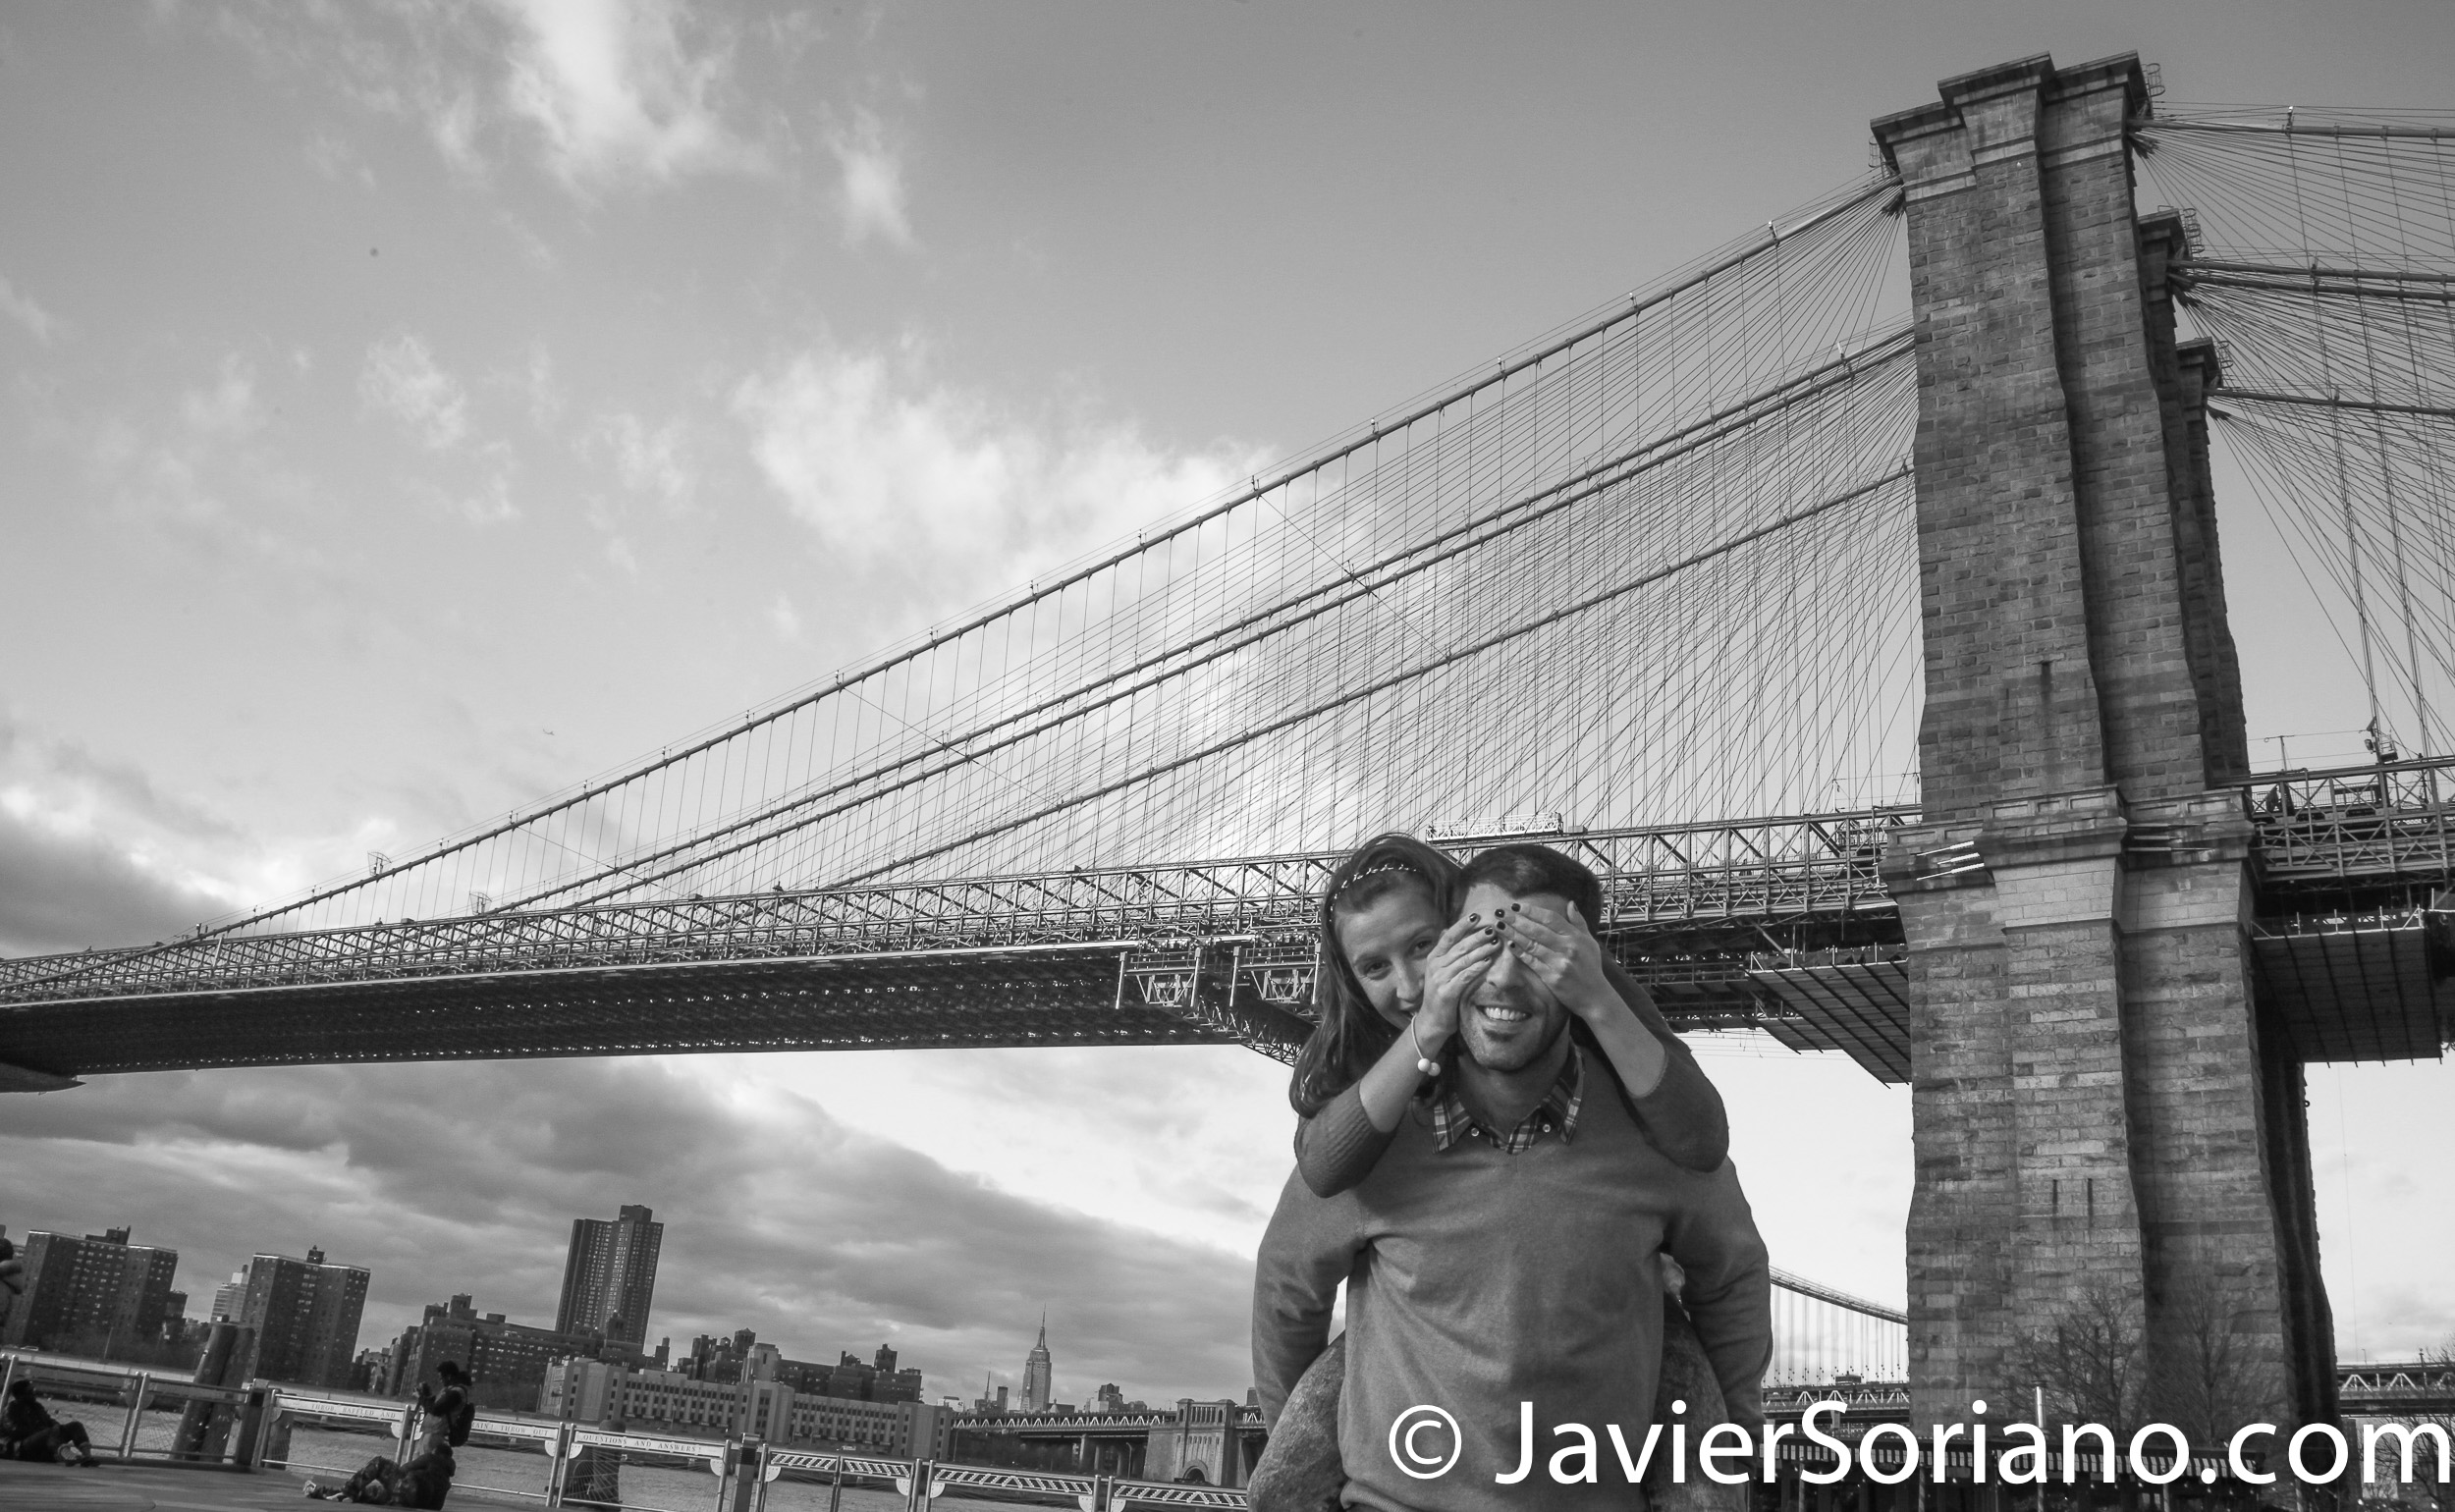 """Couple visiting NYC. The Brooklyn Bridge on the background. I can be your personal photographer/videographer in New York City. With a tour of """"The City That Never Sleeps"""" with a professional and personal photographer/videographer, you will visit the most interesting places of """"The Capital of the World"""" and you will save time and money. I know New York City, I love photography/videography, I love people, I love traveling and I love tourists. I love what I do! Send me a message. Photo by Javier Soriano/www.JavierSoriano.com"""